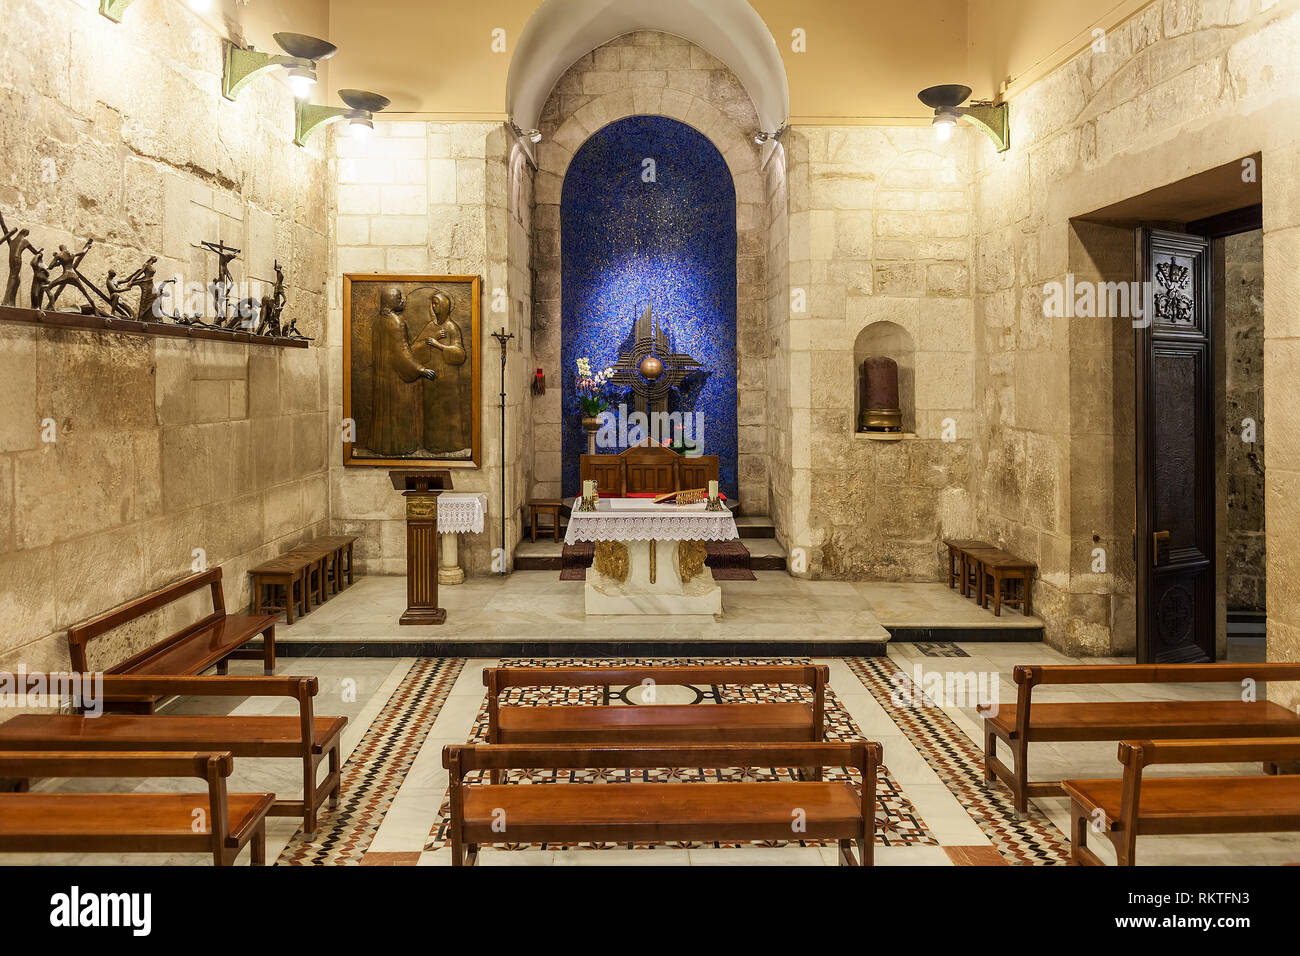 Franciscan Chapel of the Blessed Sacrament (aka Chapel of the Apparition) inside of The Church of the Holy Sepulchre in Jerusalem. - Stock Image